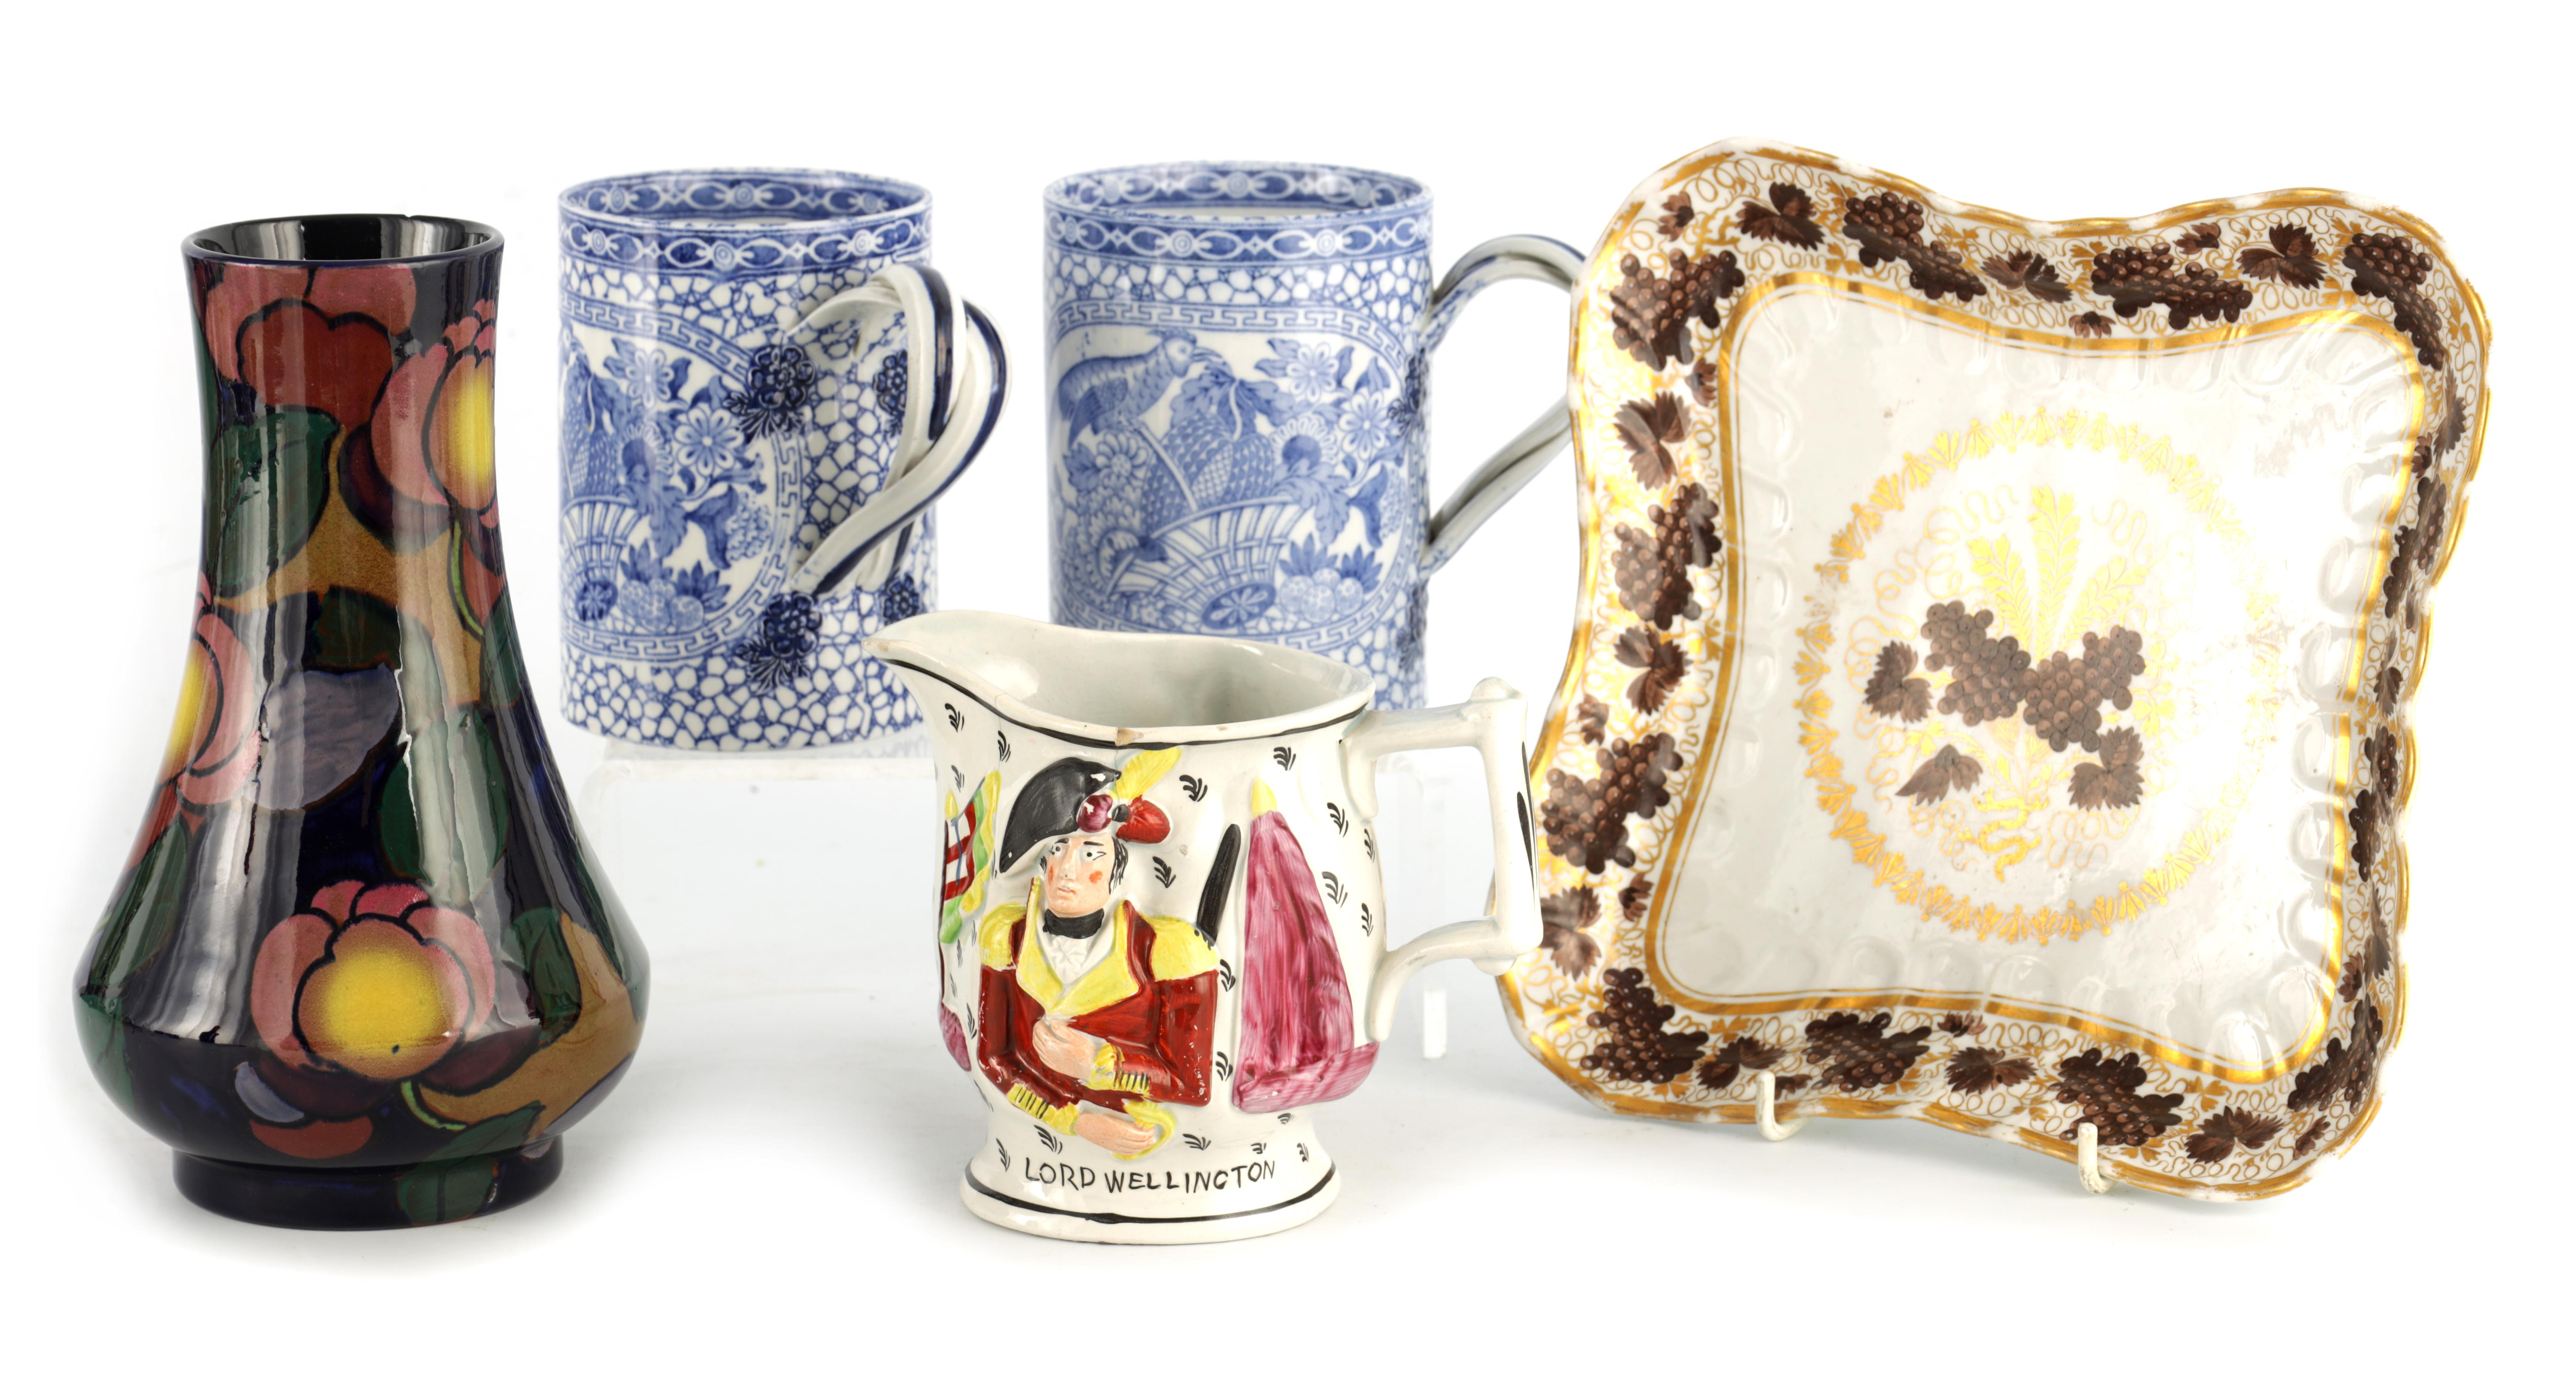 A 19TH CENTURY PEARLWARE JUG WITH RELIEF MOULDED PANELS OF LORD WELLINGTON AND GENERAL HILL on a